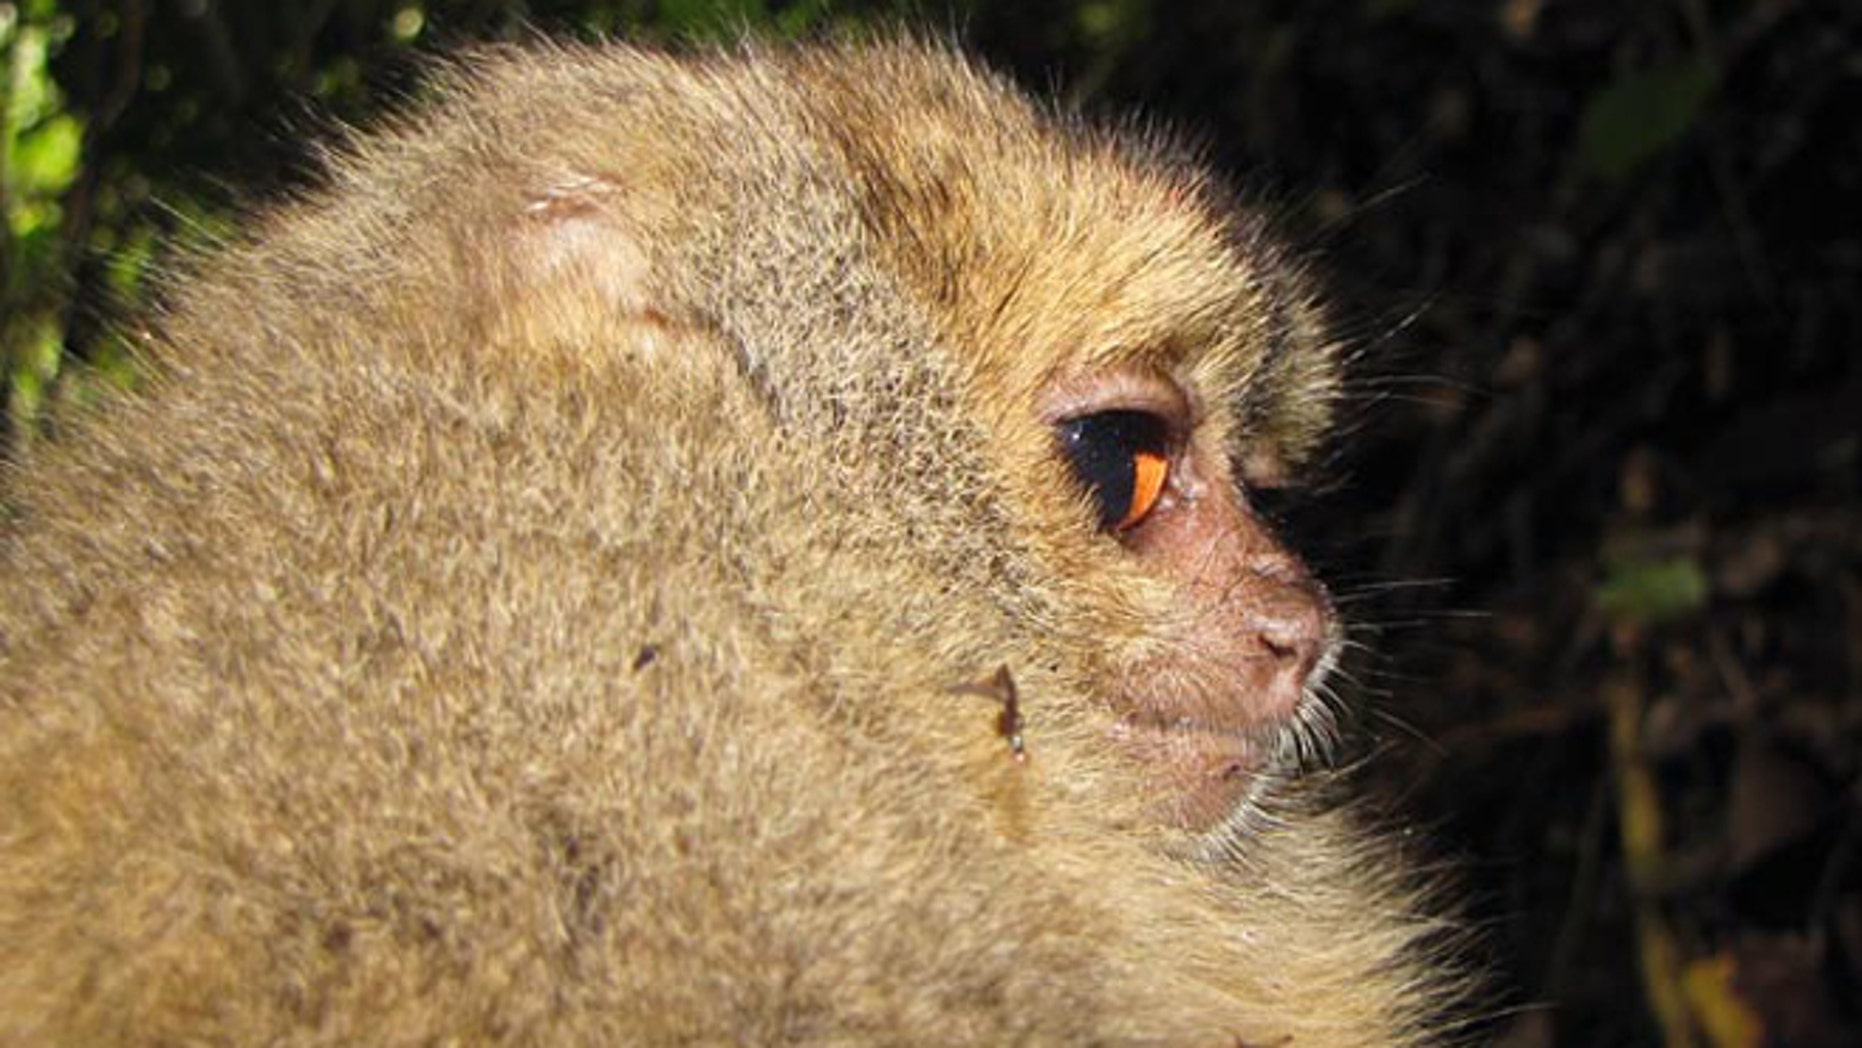 Some of the animals found include an as of yet unnamed type of night monkey with orange-colored eyes.